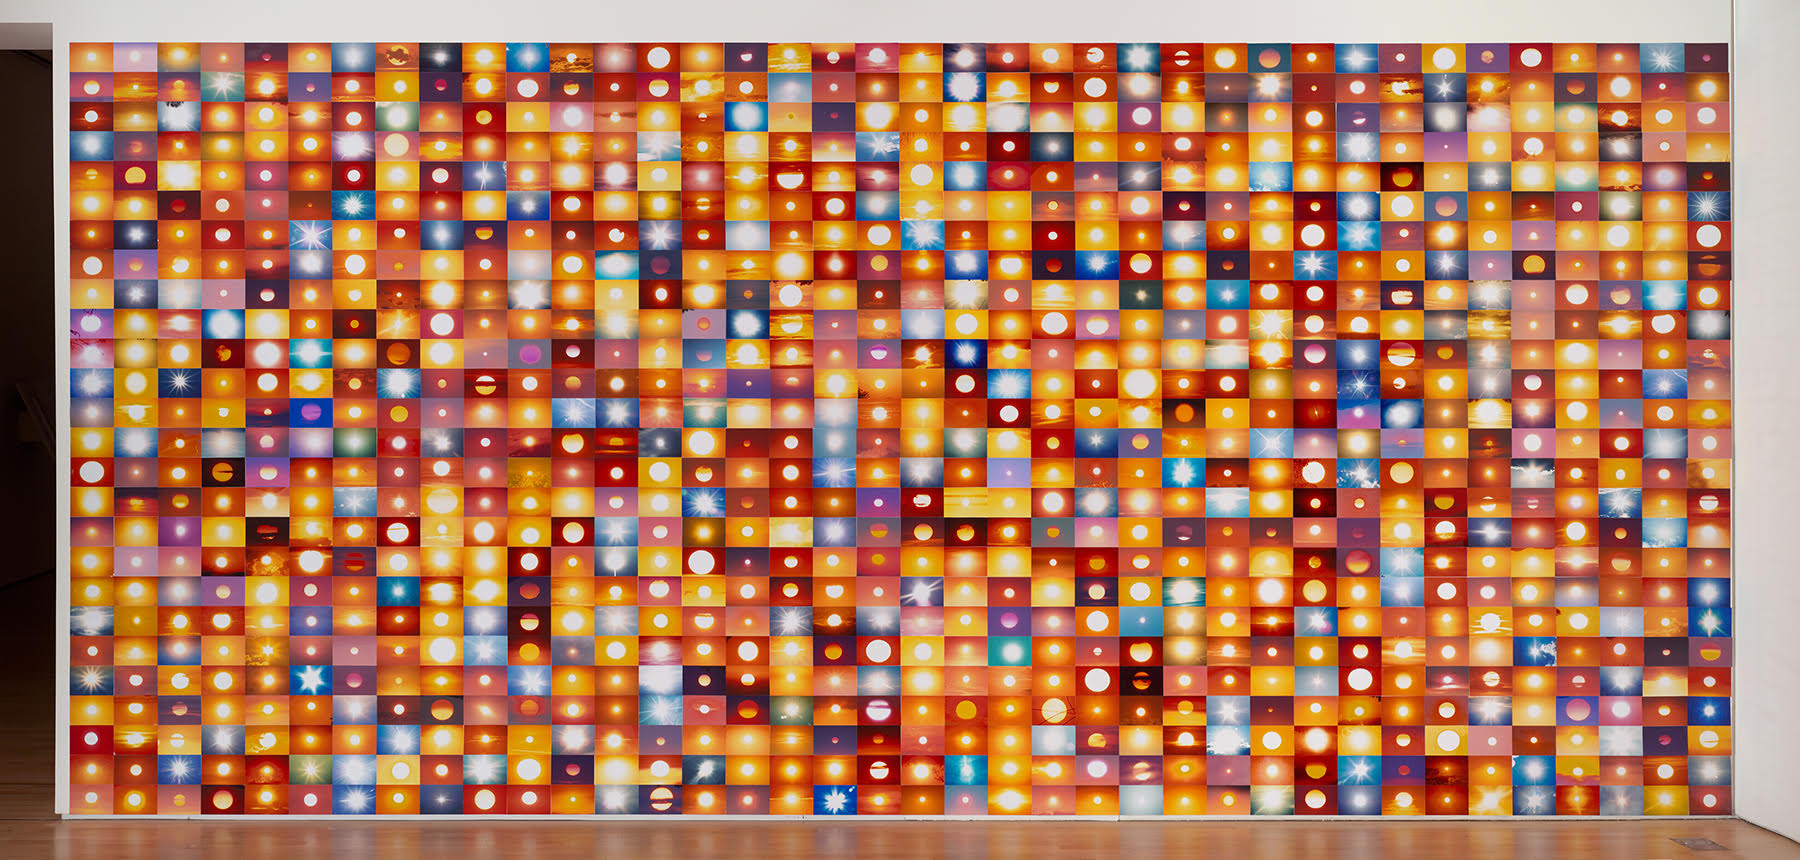 5,377,183 Suns from Sunsets from Flickr (Partial) 04/28/09,  2009 Installation view at San Francisco Museum of Modern Art, 2009 Courtesy the Artist and SFMOMA